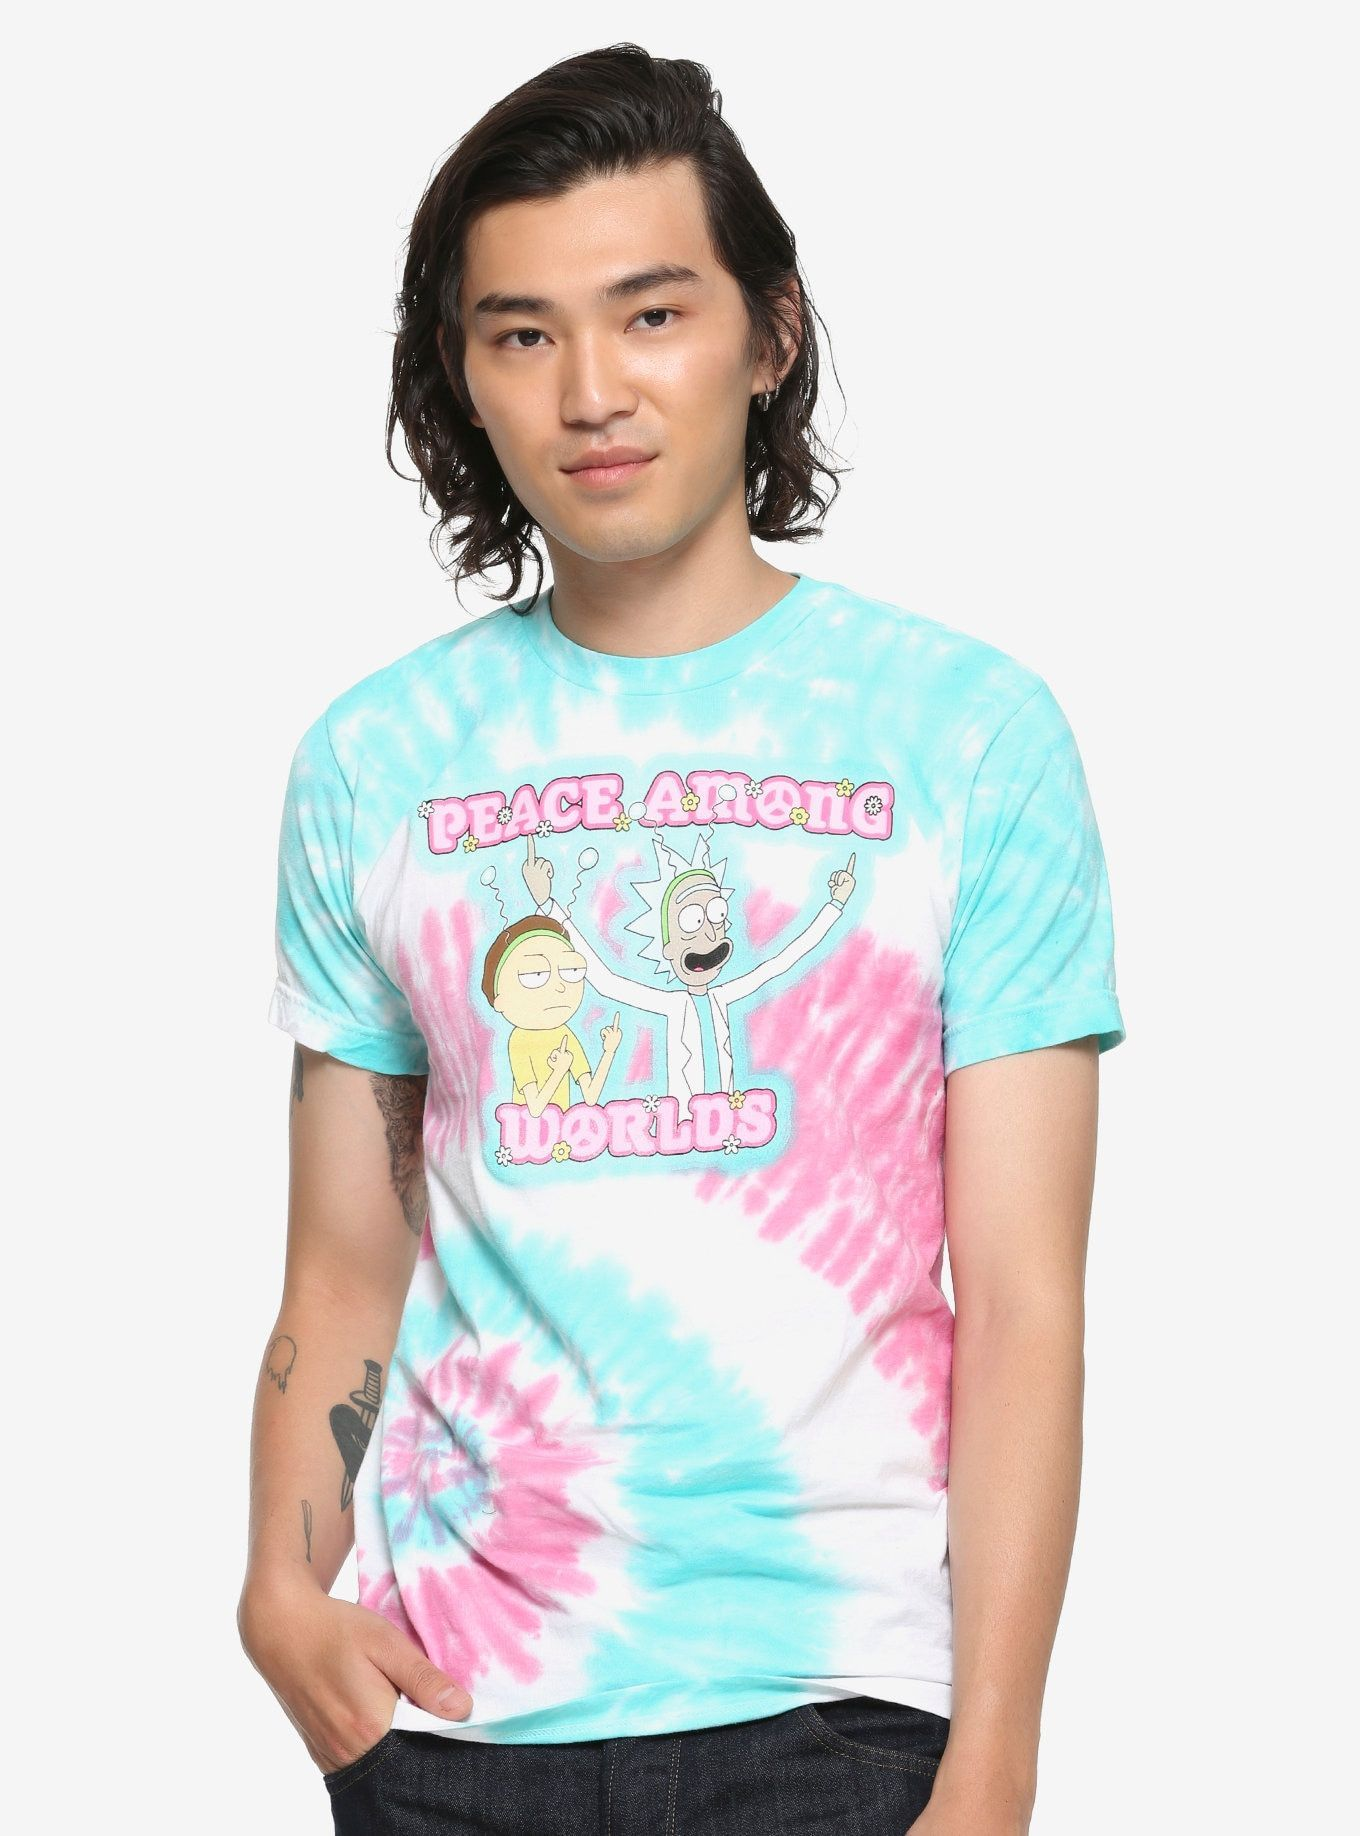 Coolteess Com Rick And Morty Peace Among Worlds Tie Dye T Shirt Exclusive Multi Long Sleeve Sweatshirt Dye T Shirt Tie Dye T Shirts T Shirts For Women [ 1836 x 1360 Pixel ]